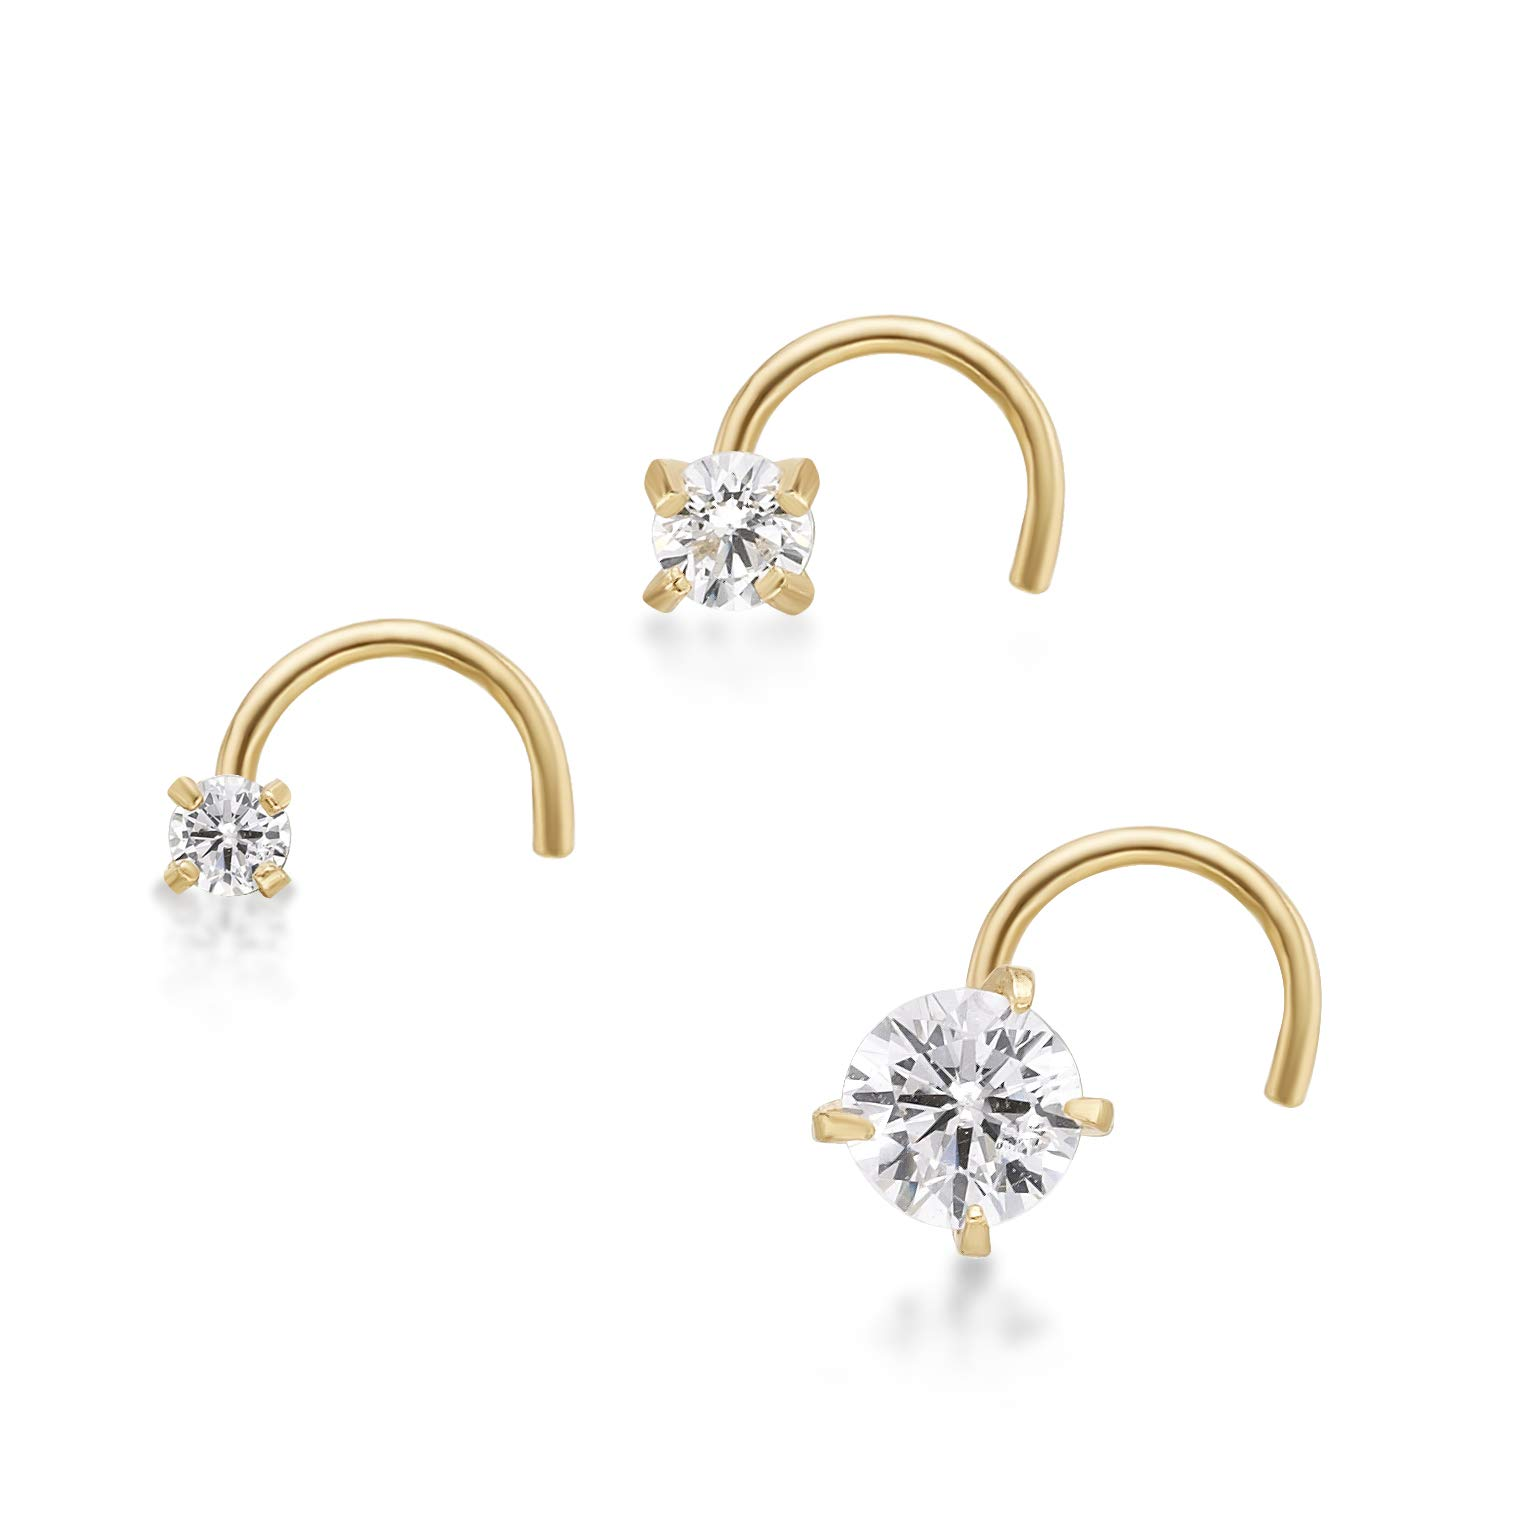 Lavari - 14K Yellow Gold 3 Pc White Cubic Zirconium Nose Ring Set